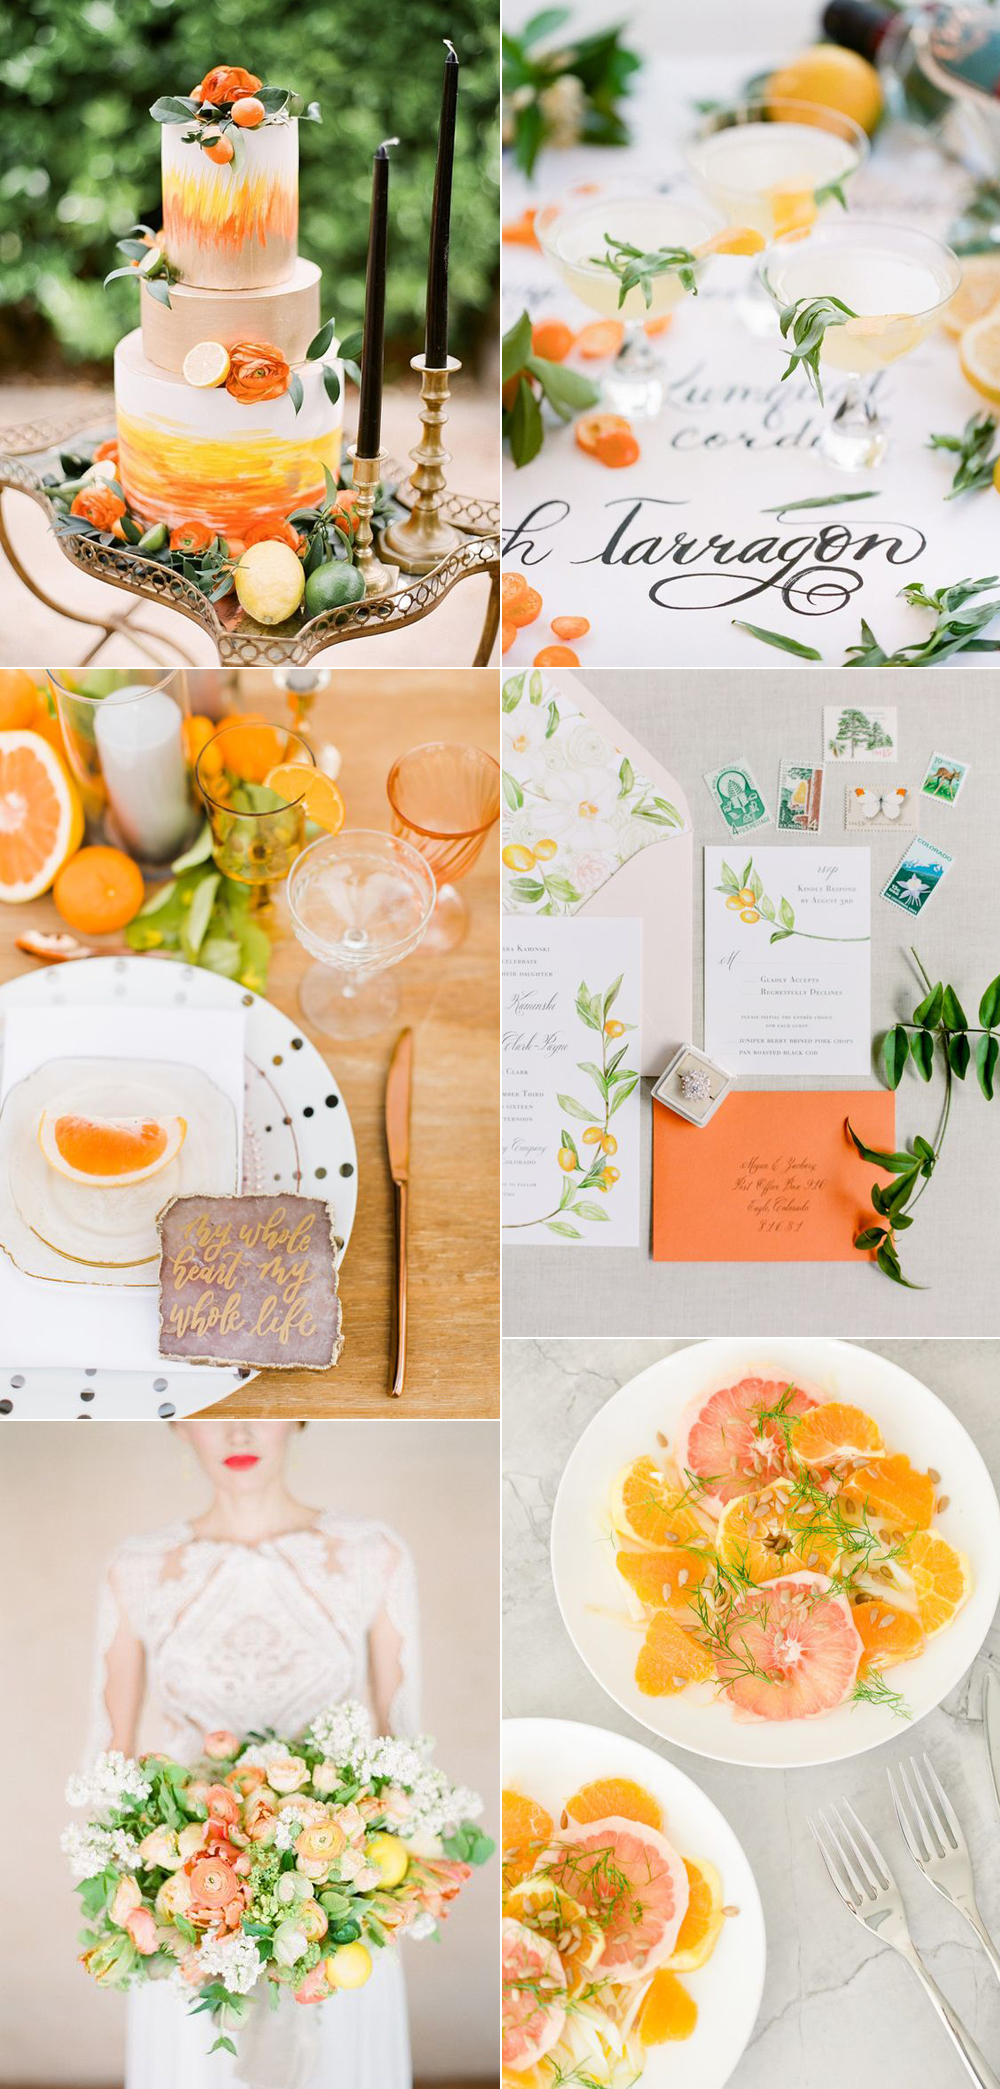 {Image Sources: Orange wedding cake featured on  Aisle Society  - photo by  Gabe + Brit Photography ; Orange cocktails featured on  Style Me Pretty  - photo by  Koman Photography ; Orange table setting featured on  100 Layer Cake  - photo by  Brett Hickman Photography ; Orange invitations featured on  Style Me Pretty  - photo by  Connie Whitlock ; Orange bouquet photo by  Koman Photography ; Citrus salad featured on  Style Me Pretty  - photo by  Lisa Renault Photography }